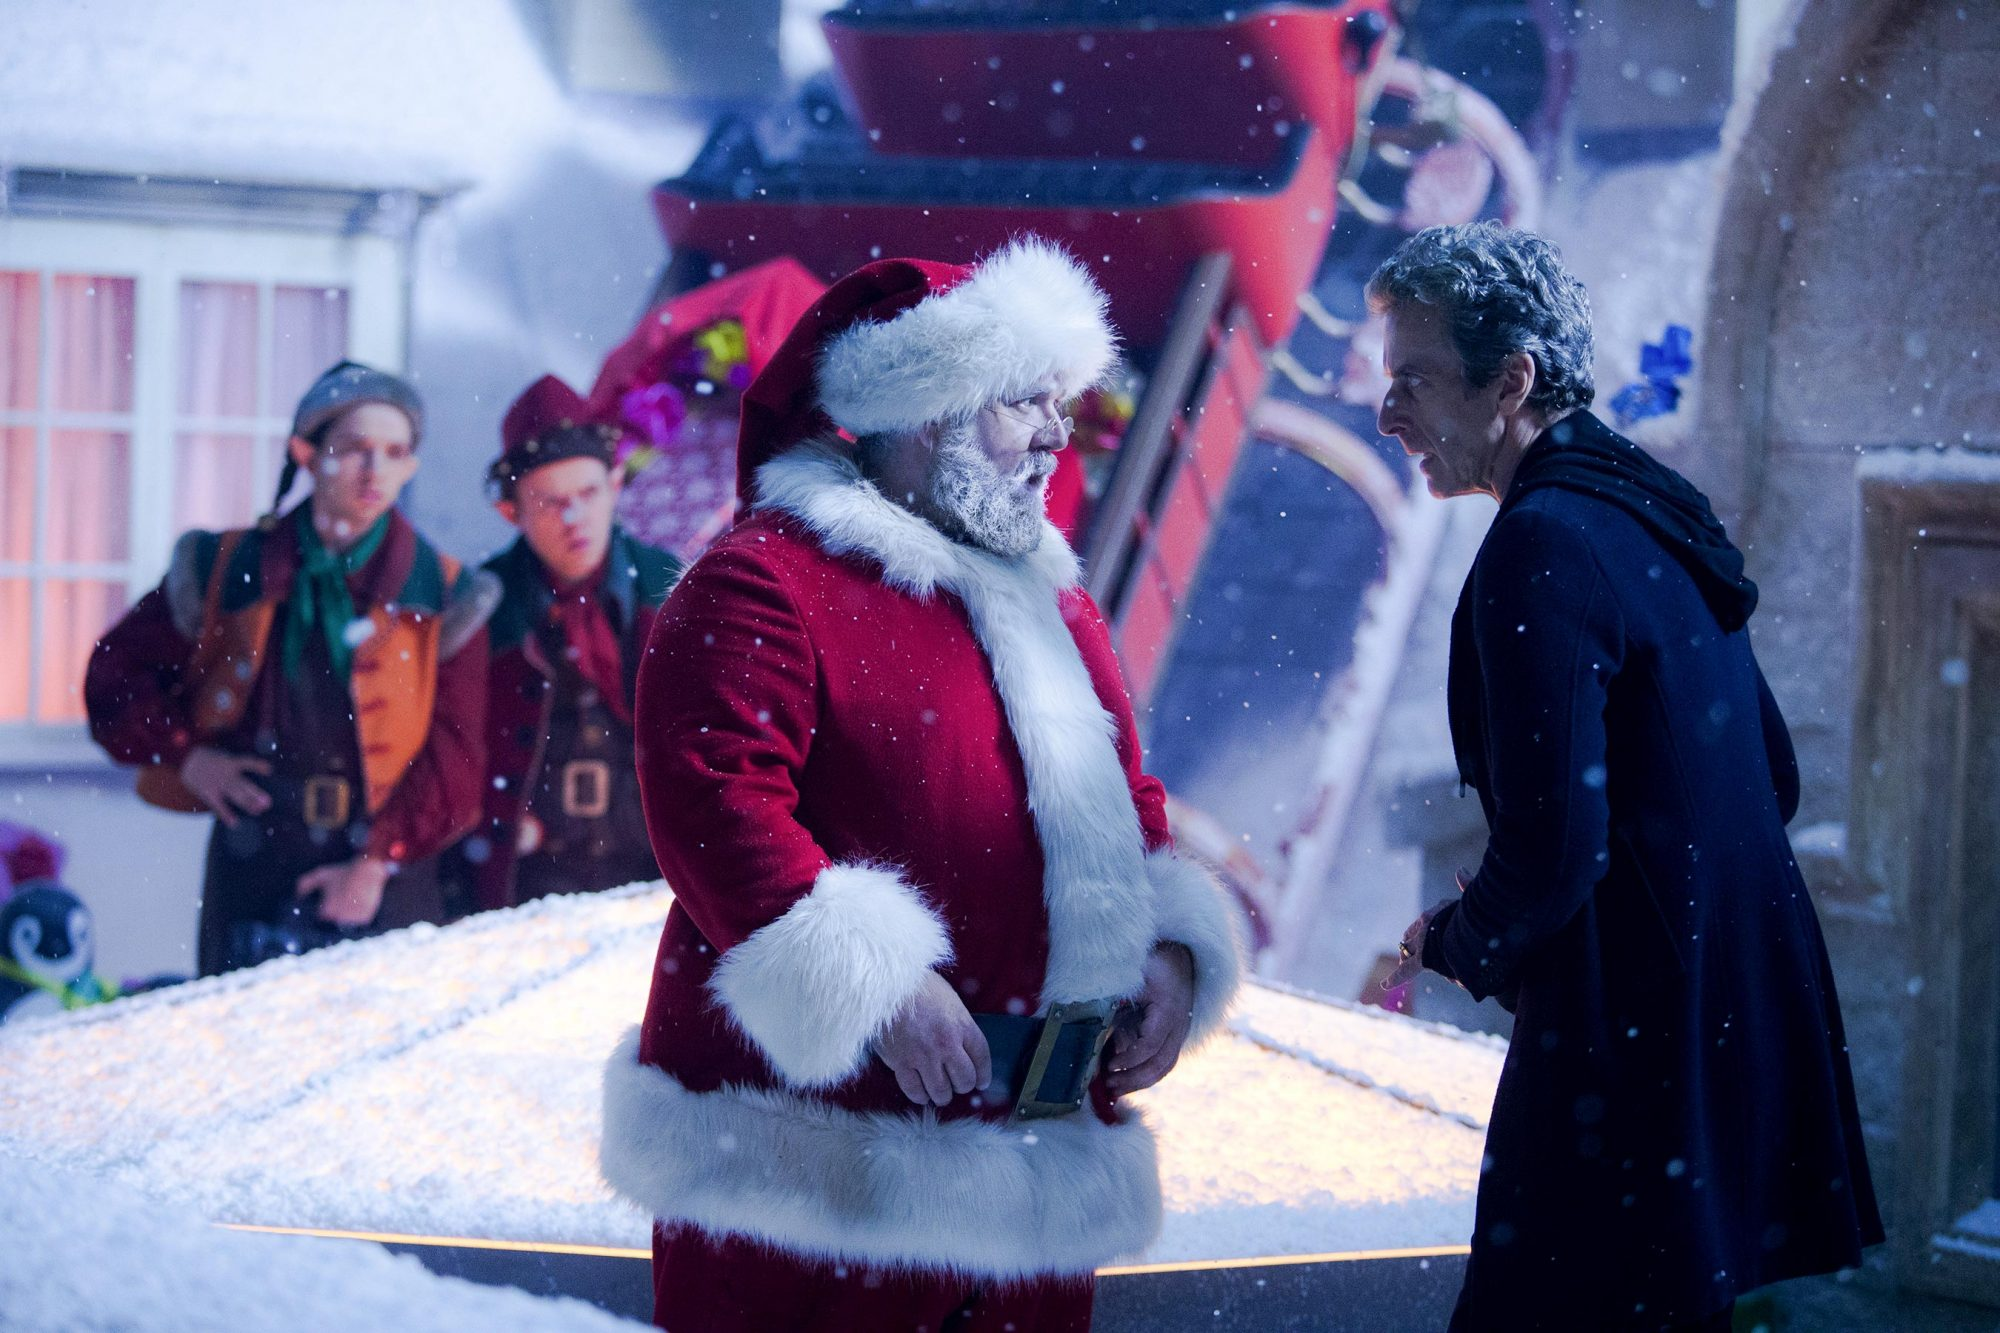 Doctor Who Christmas Special 2014. 'Last Christmas' by Steven Moffat